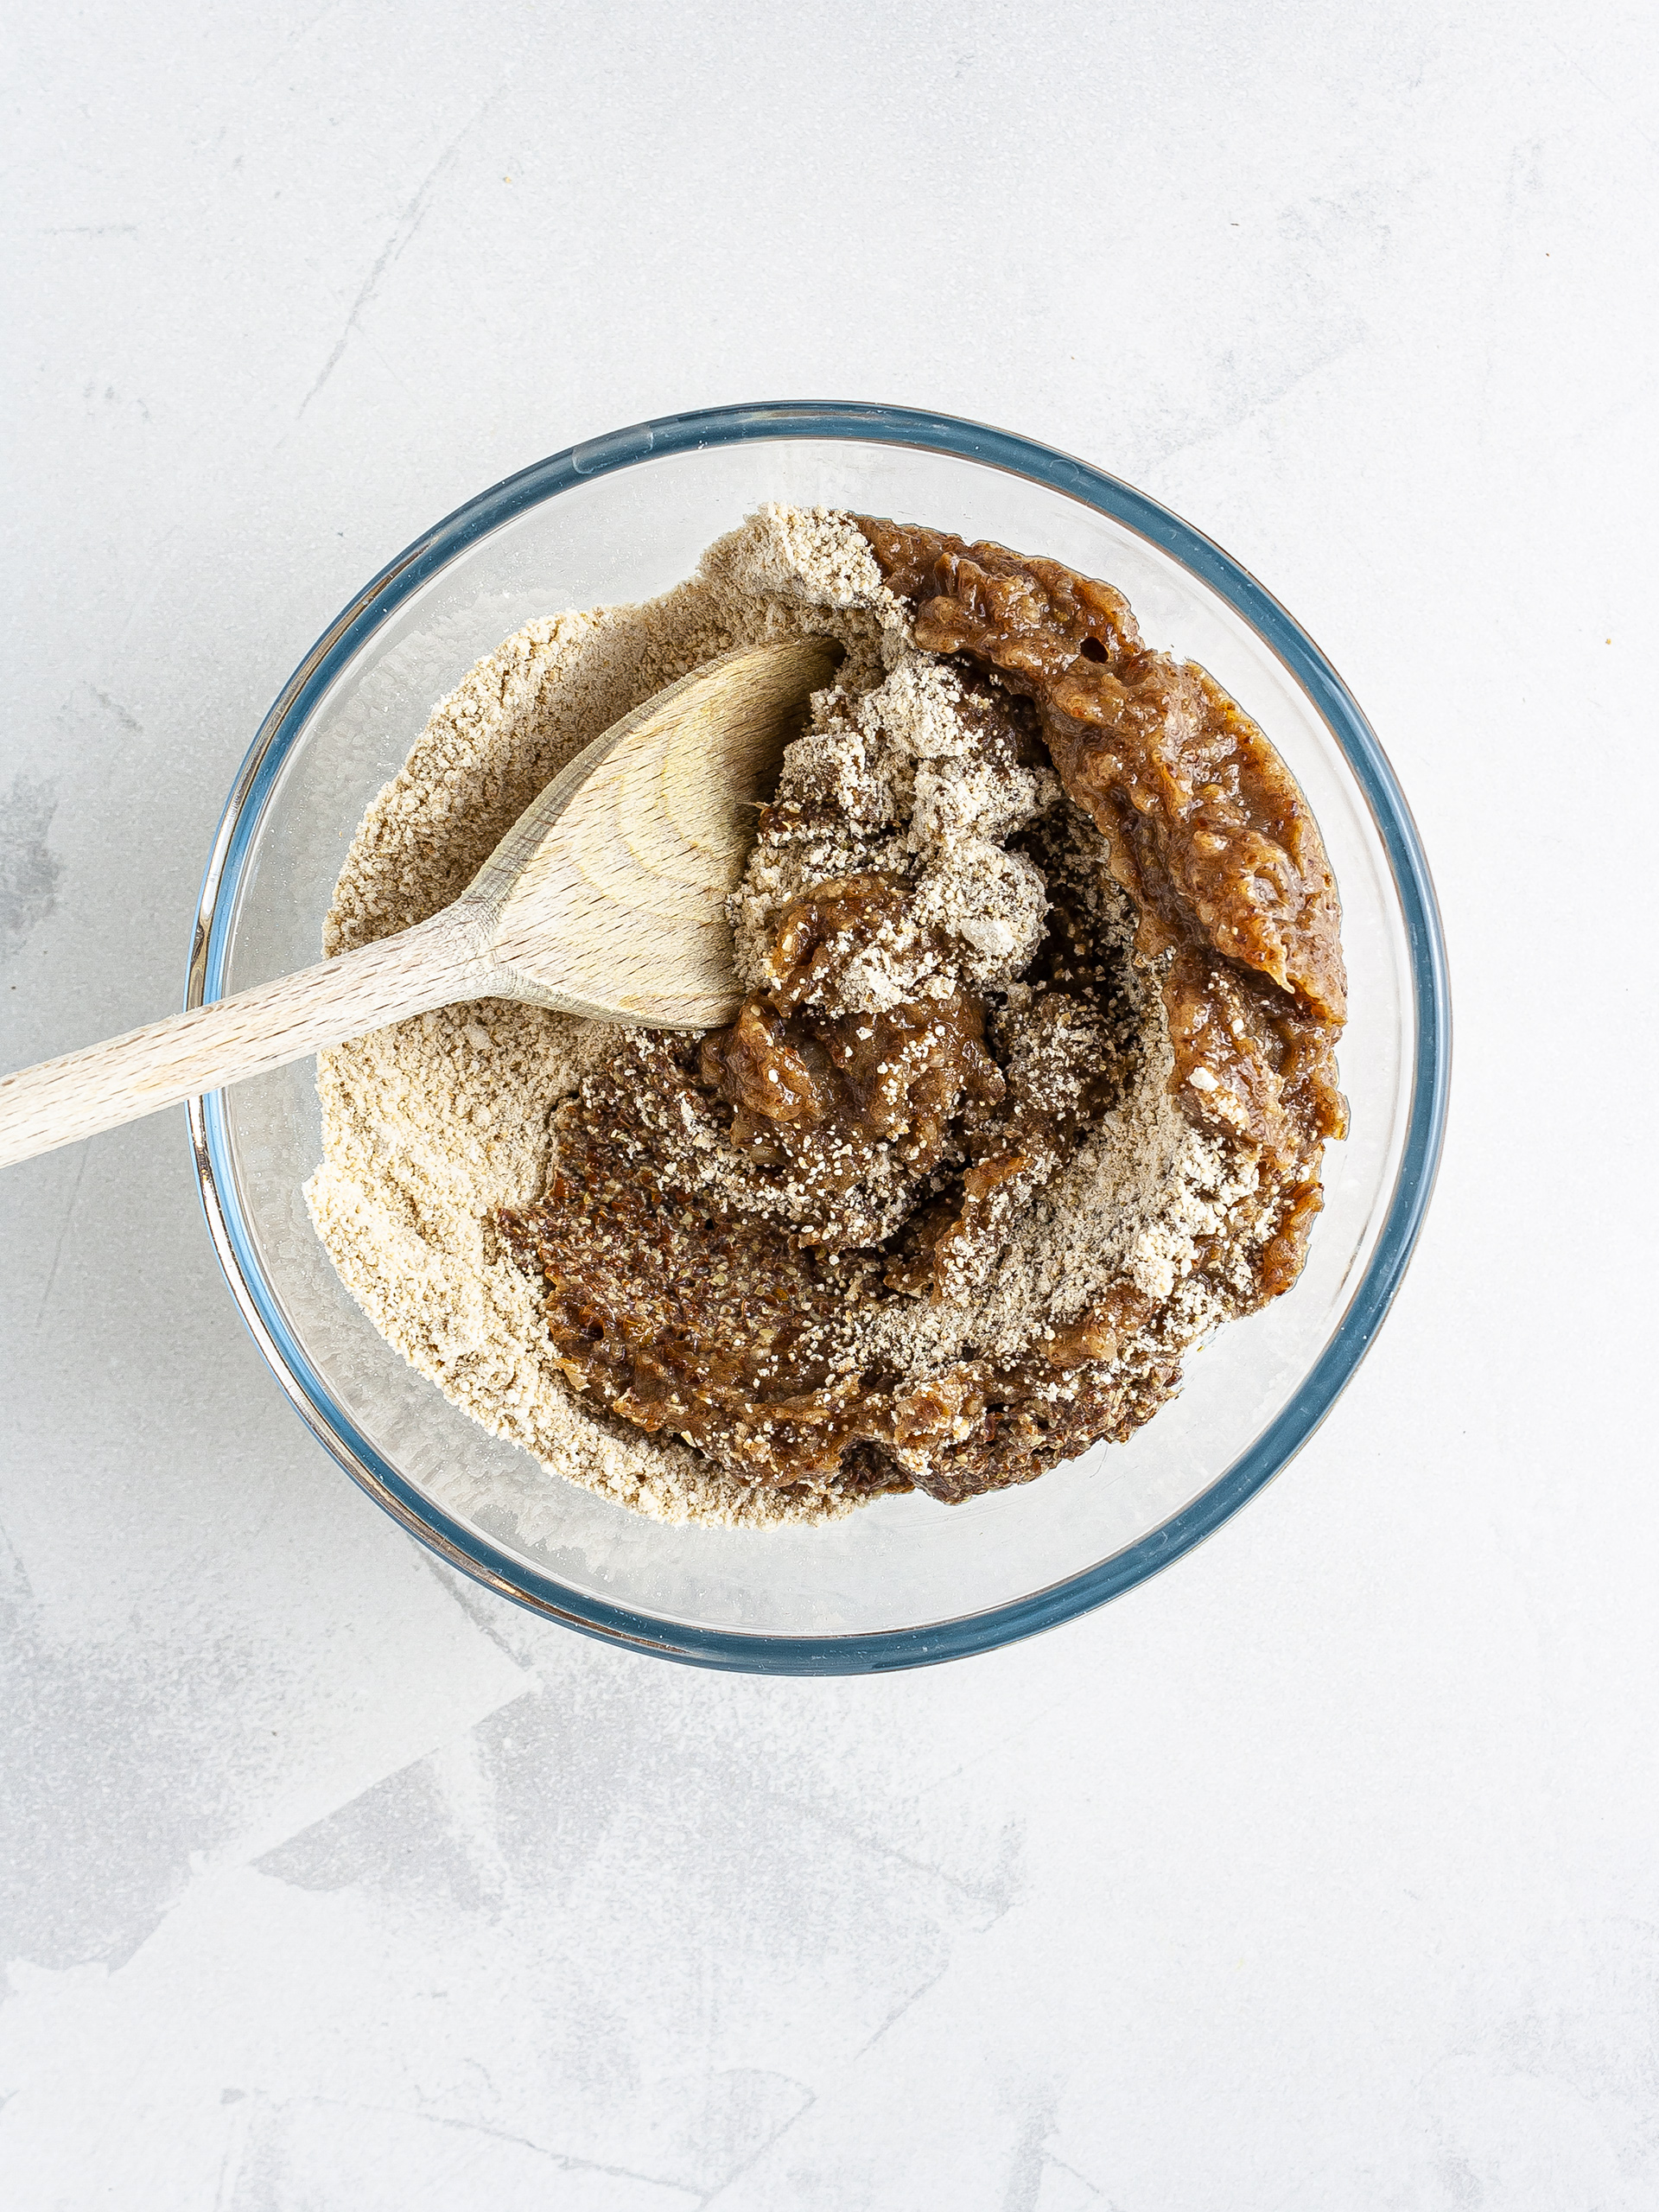 Pie crust dough with oats